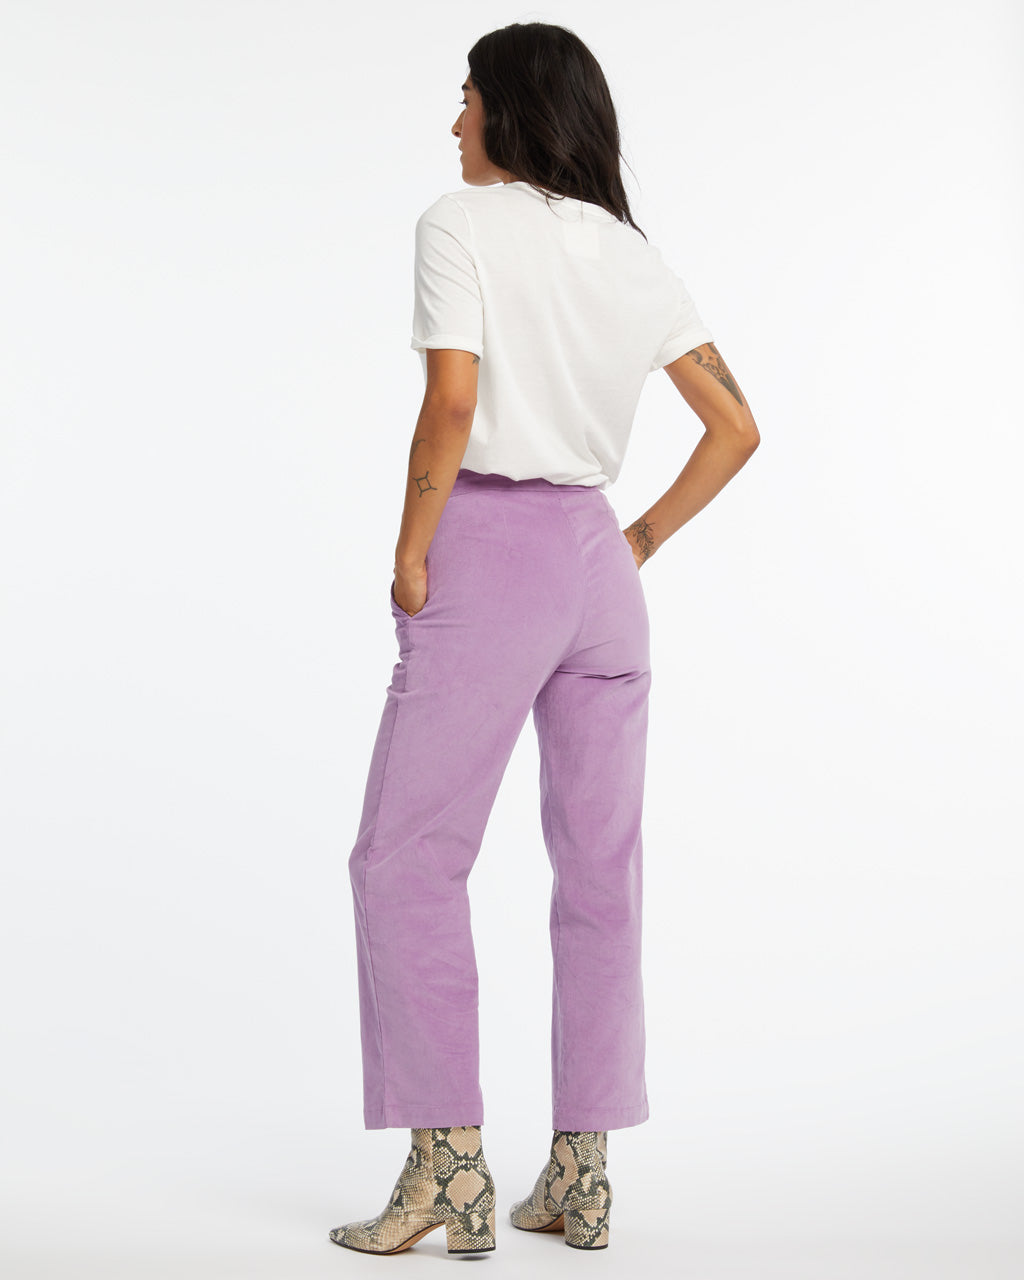 back view of woman wearing purple corduroy pants with a t-shirt and snakeskin boots